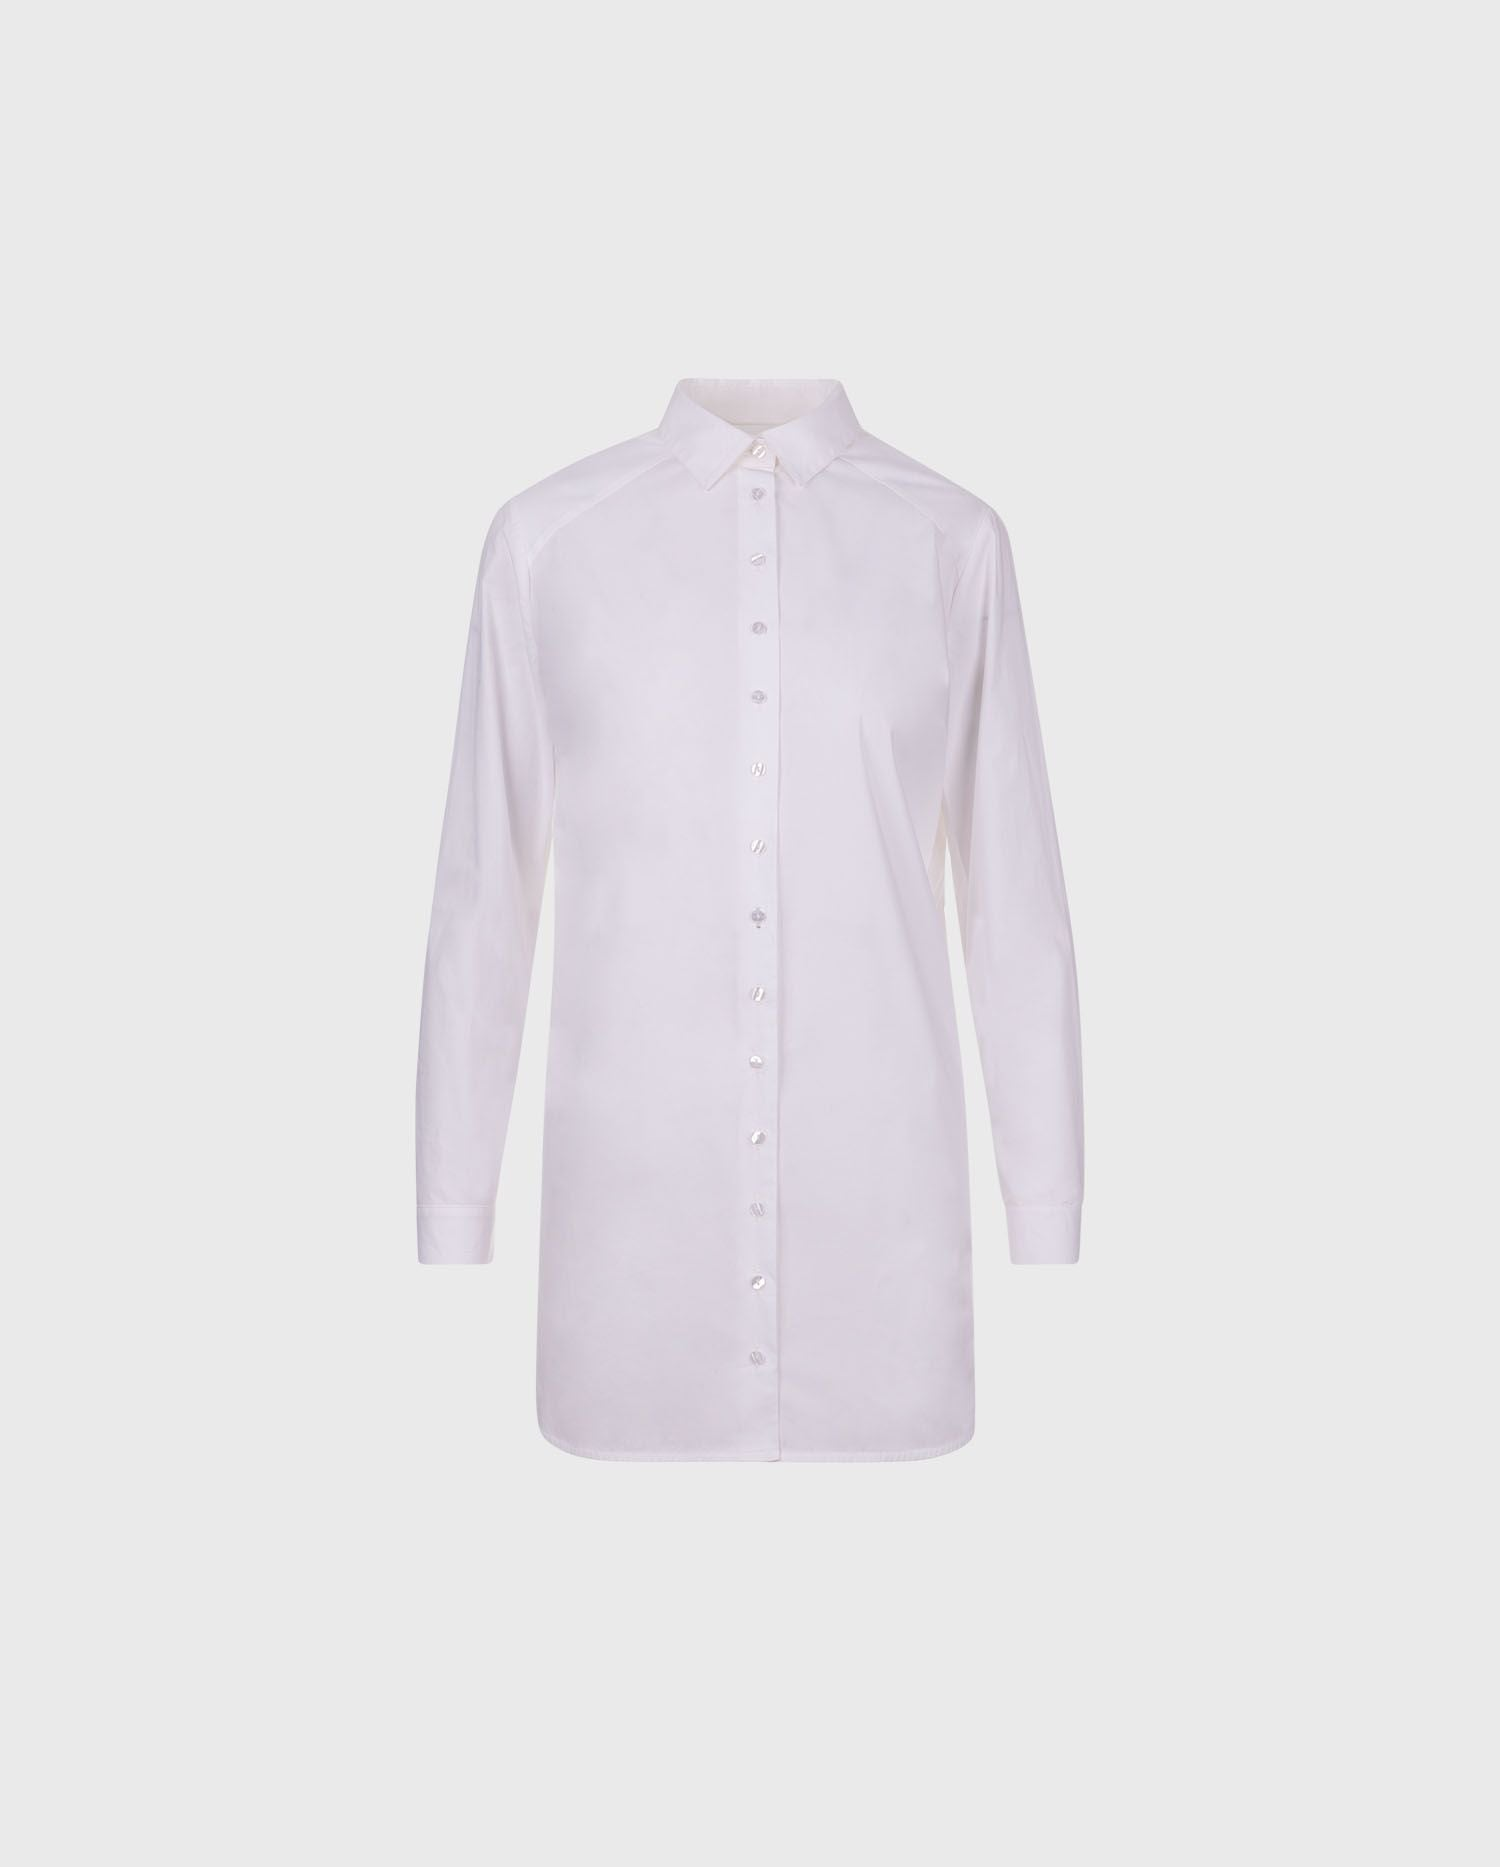 BOYFRIEND: Tunic length shirt with embroidered details | ANNE FONTAINE